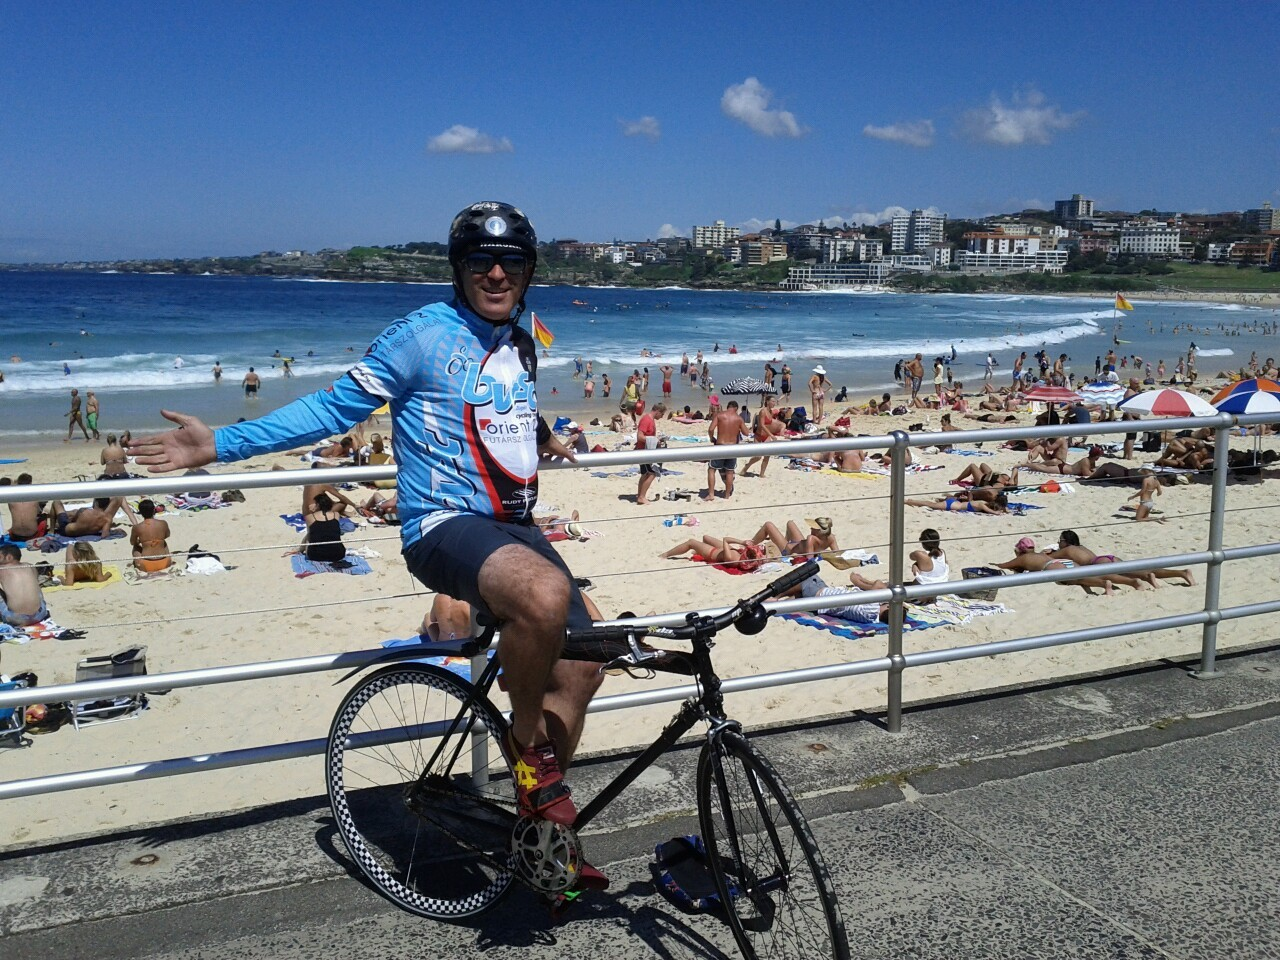 BVSC at Bondi Beach.